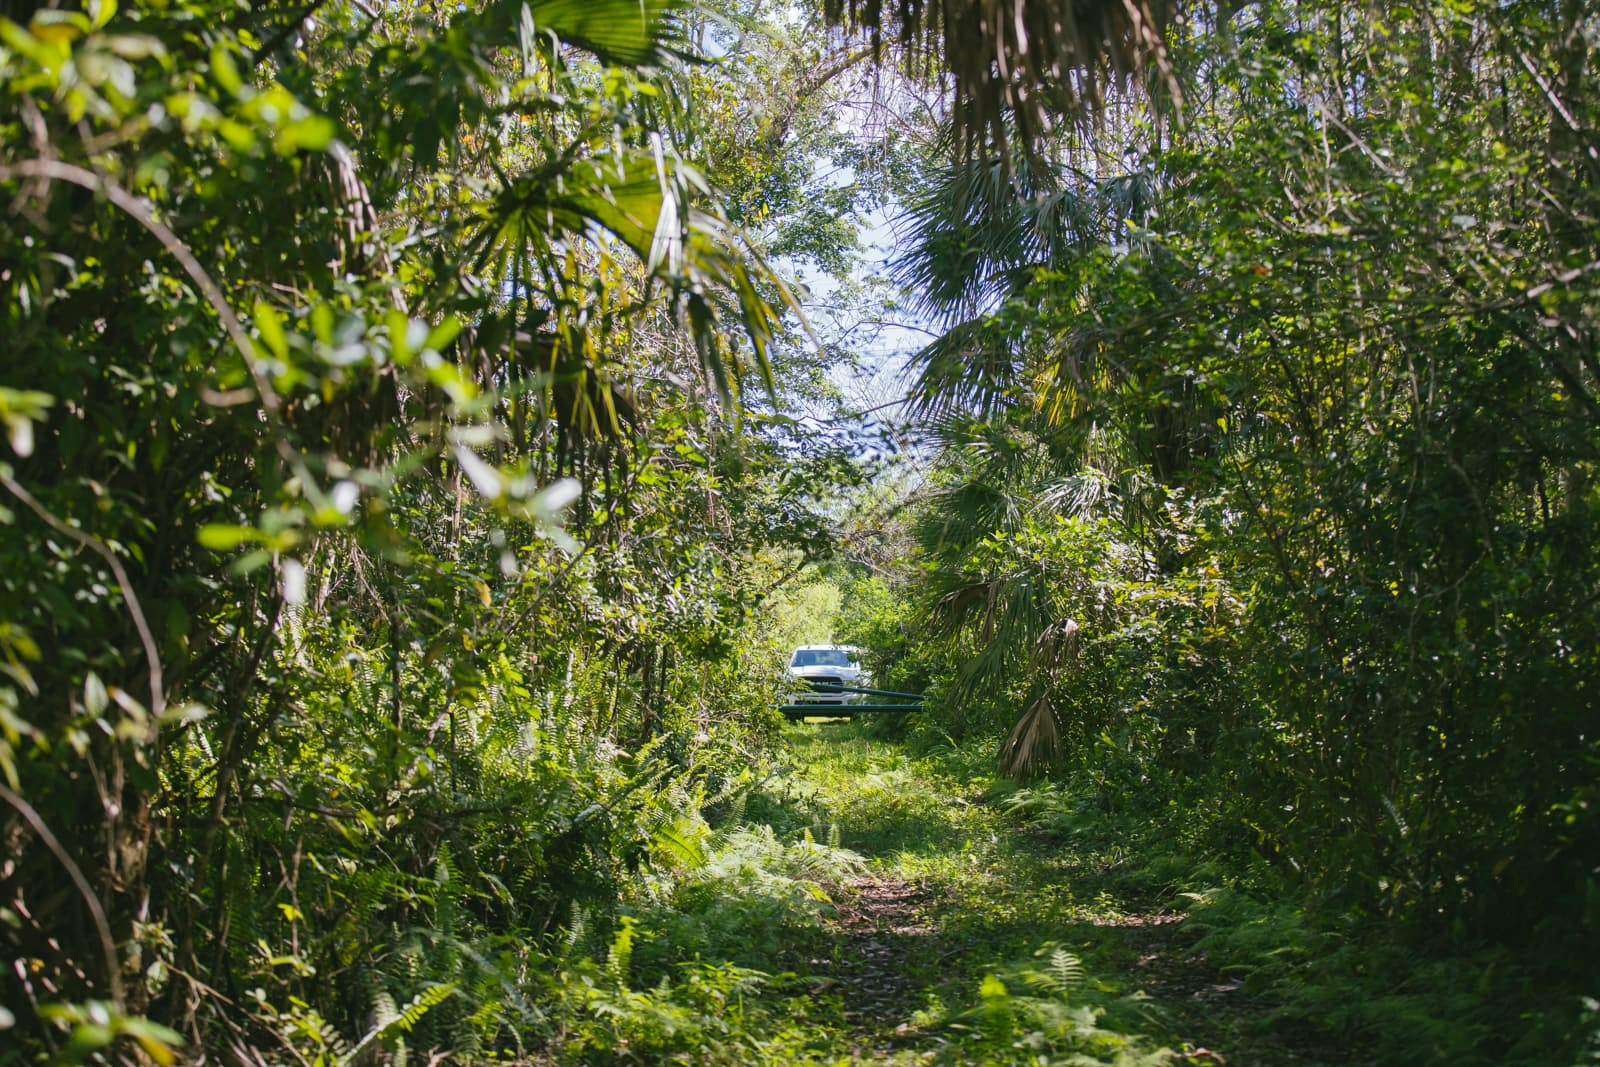 Truck parked at the entrance of the Everglades trail